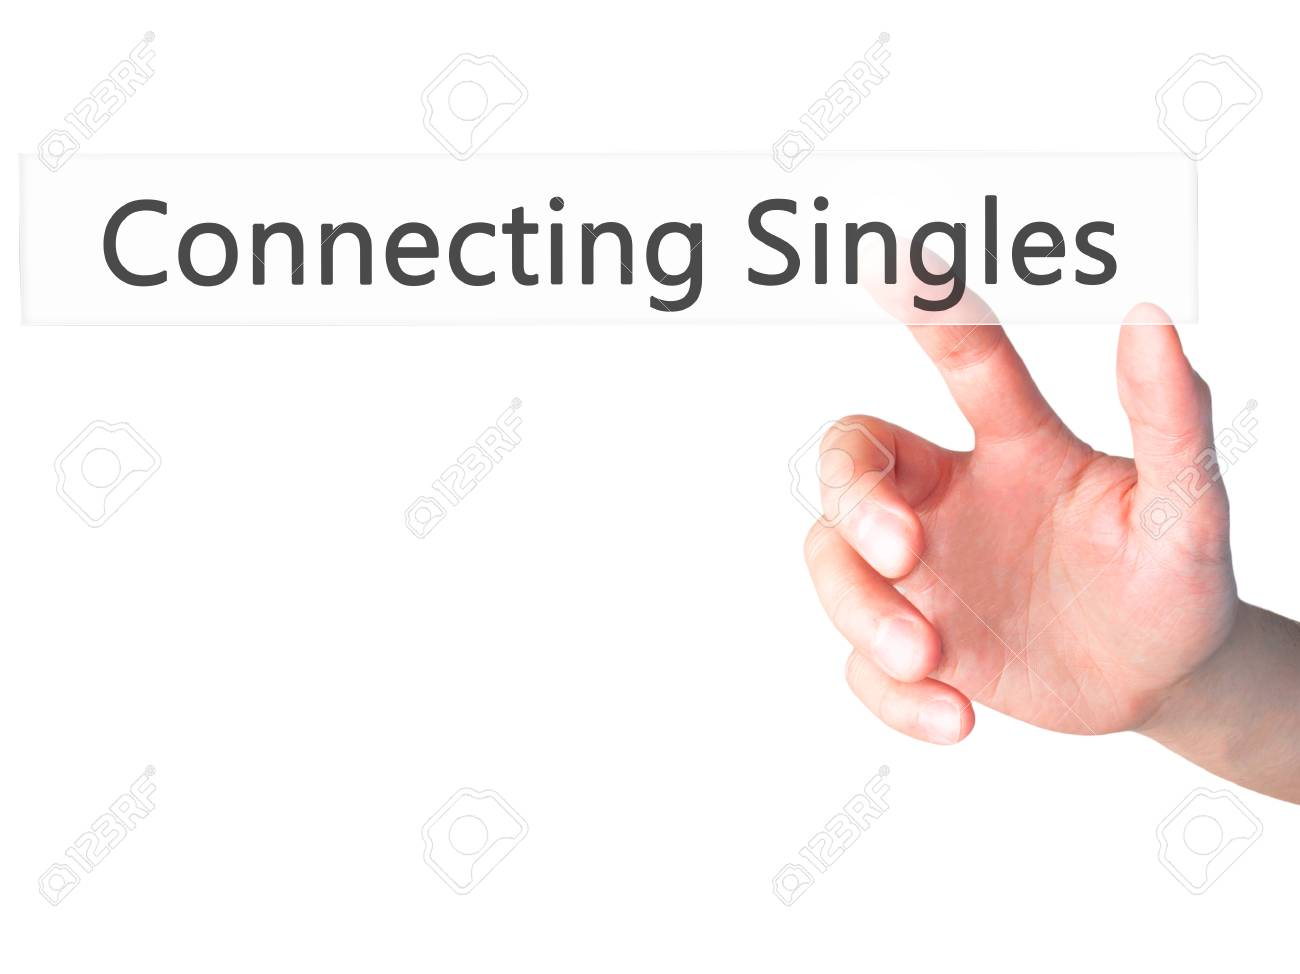 connecting singles sign in